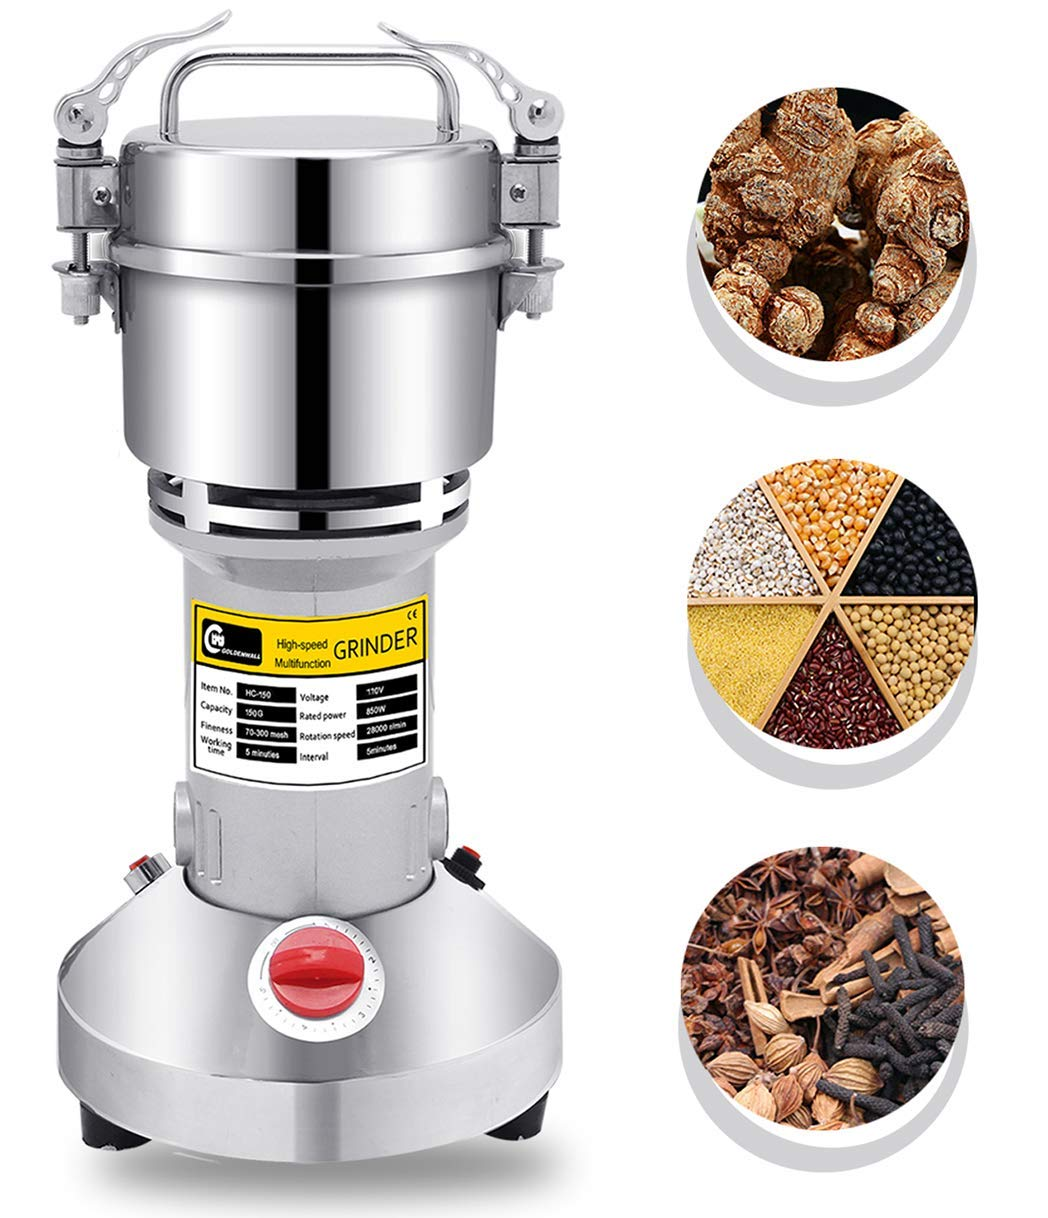 CGOLDENWALL 300g Electric Grain Mill Spice Herb Grinder Pulverizer Super  Fine Powder Machine for Spice Herbs Grains Coffee Rice Corn Sesame Soybean